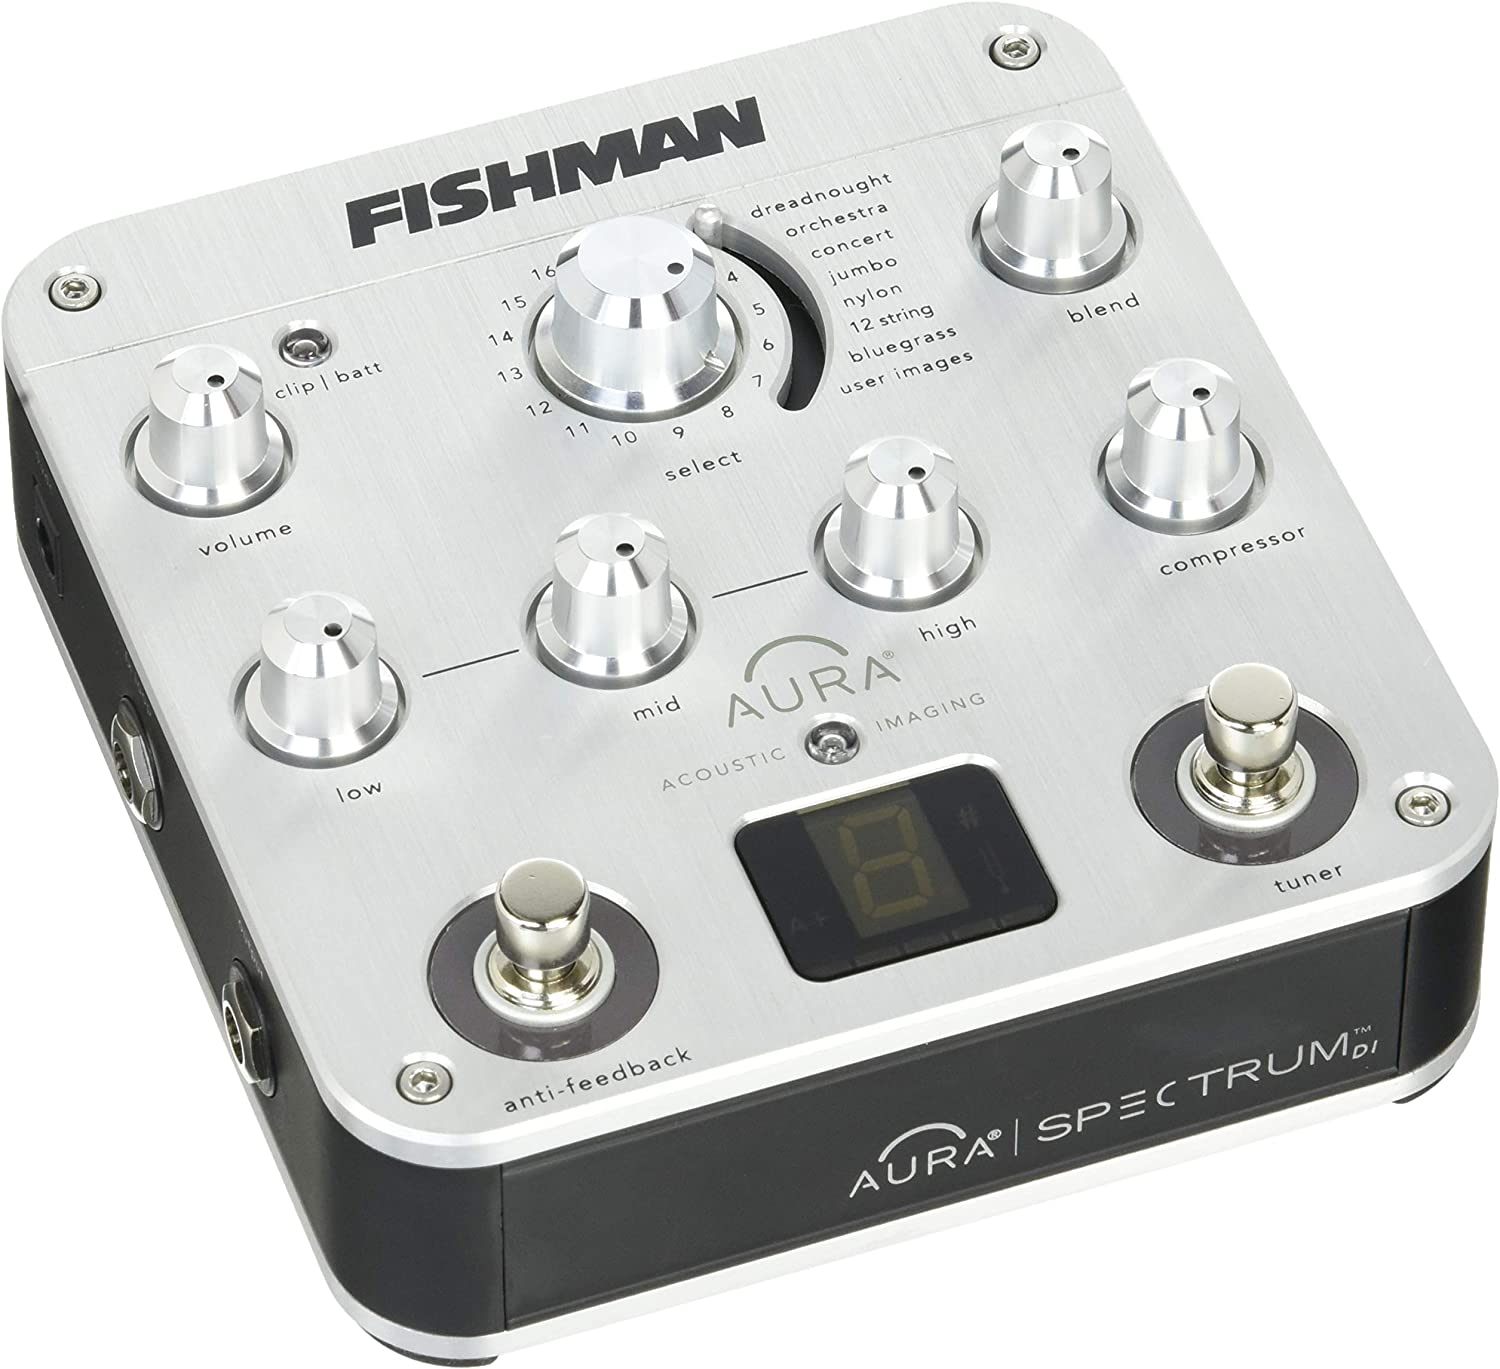 Top 10 Best Guitar Preamp Pedal Reviews in 2020 1